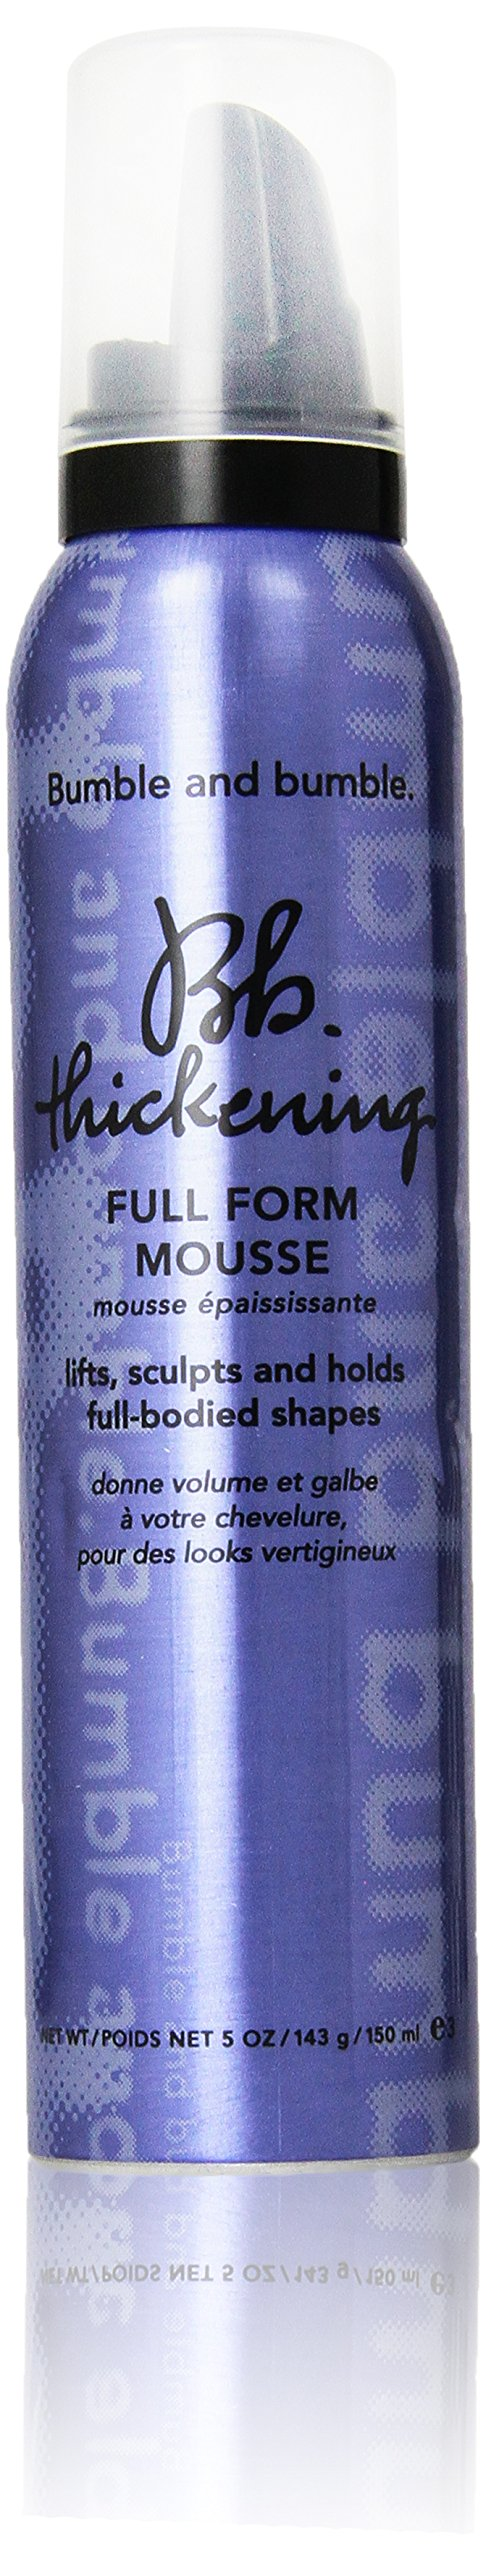 Bumble and Bumble Thickening Full Form Mousse, 5 Ounce